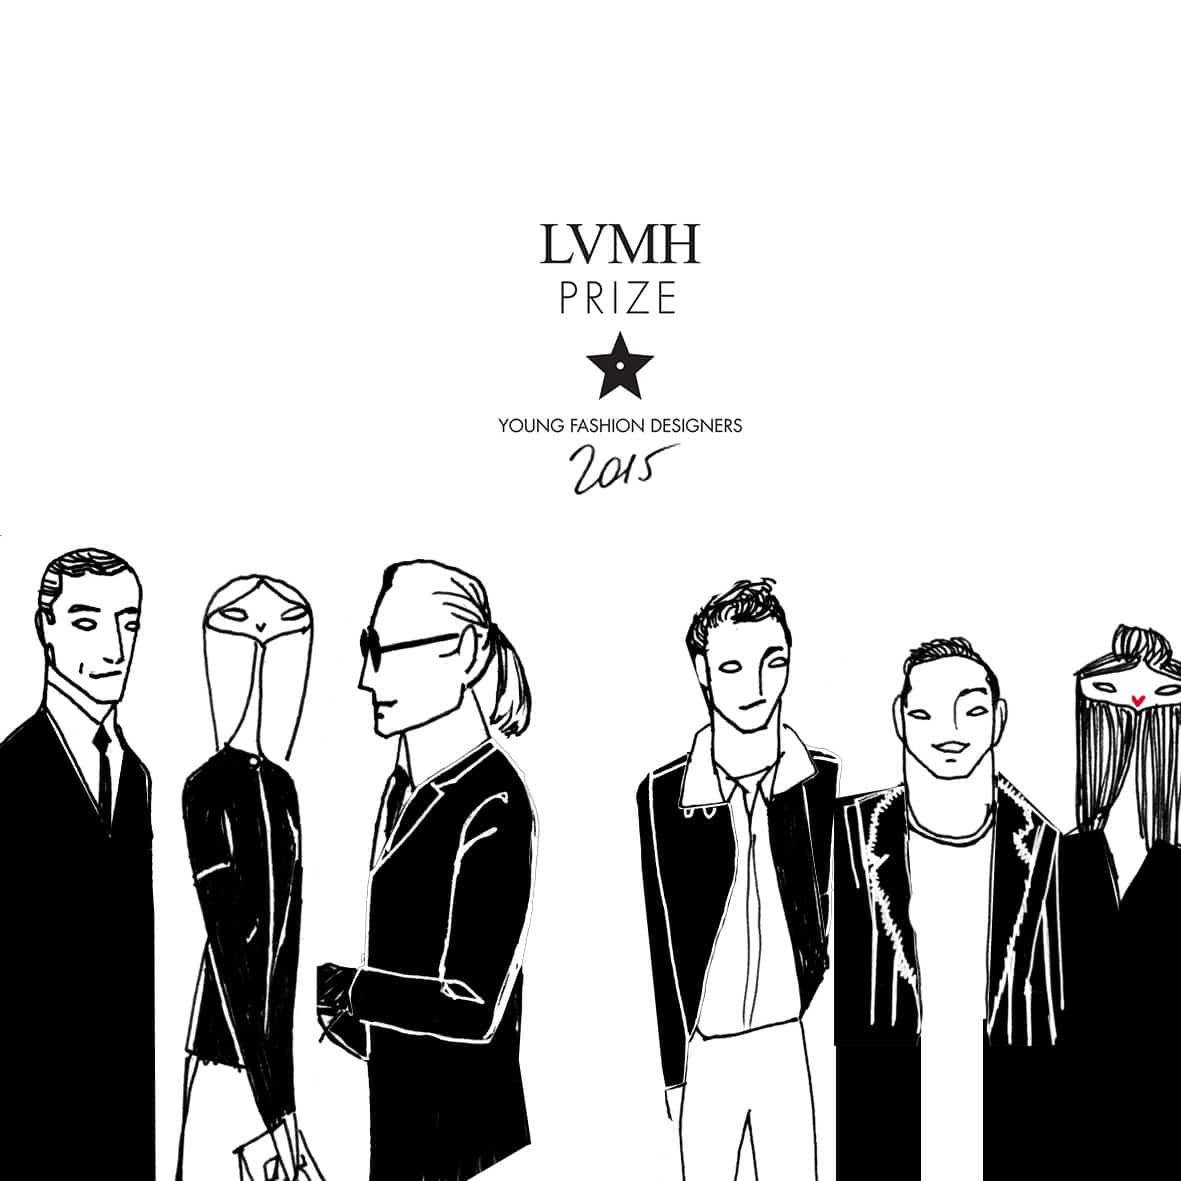 Drawing of the jury of the LVMH prize